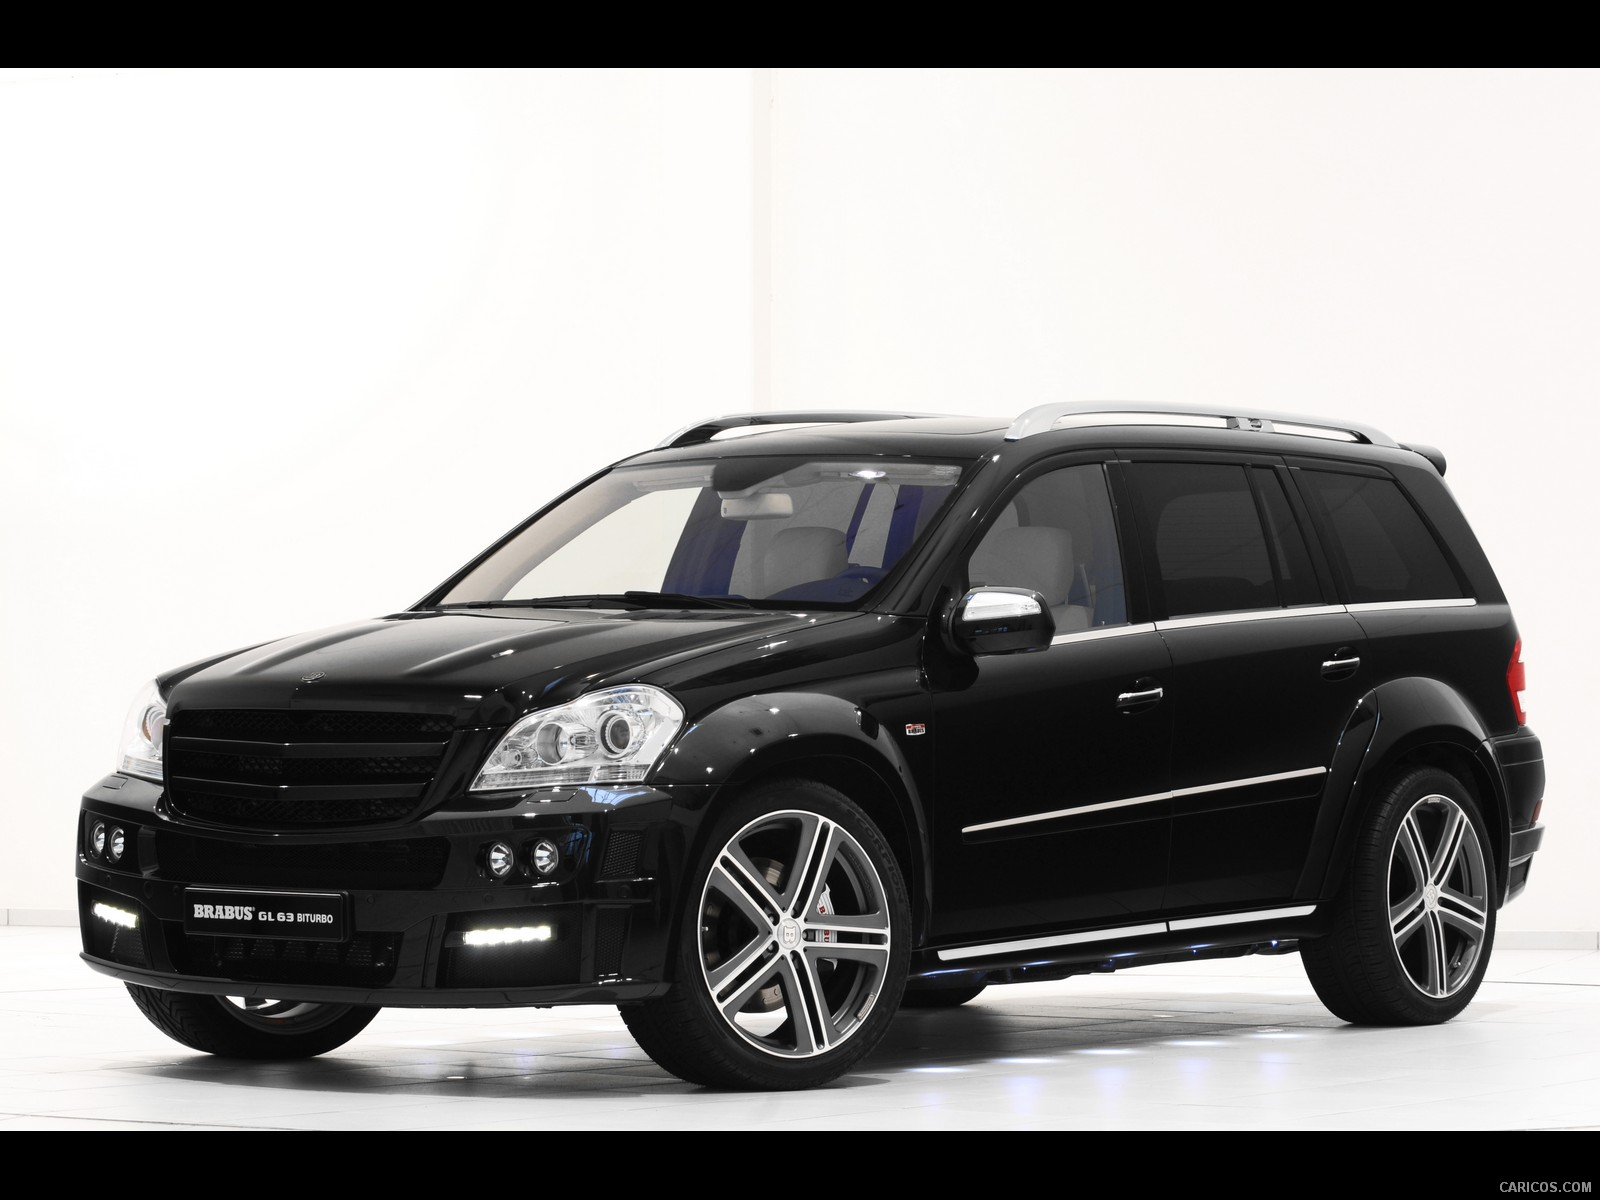 Brabus GL 63 Biturbo photo 119290